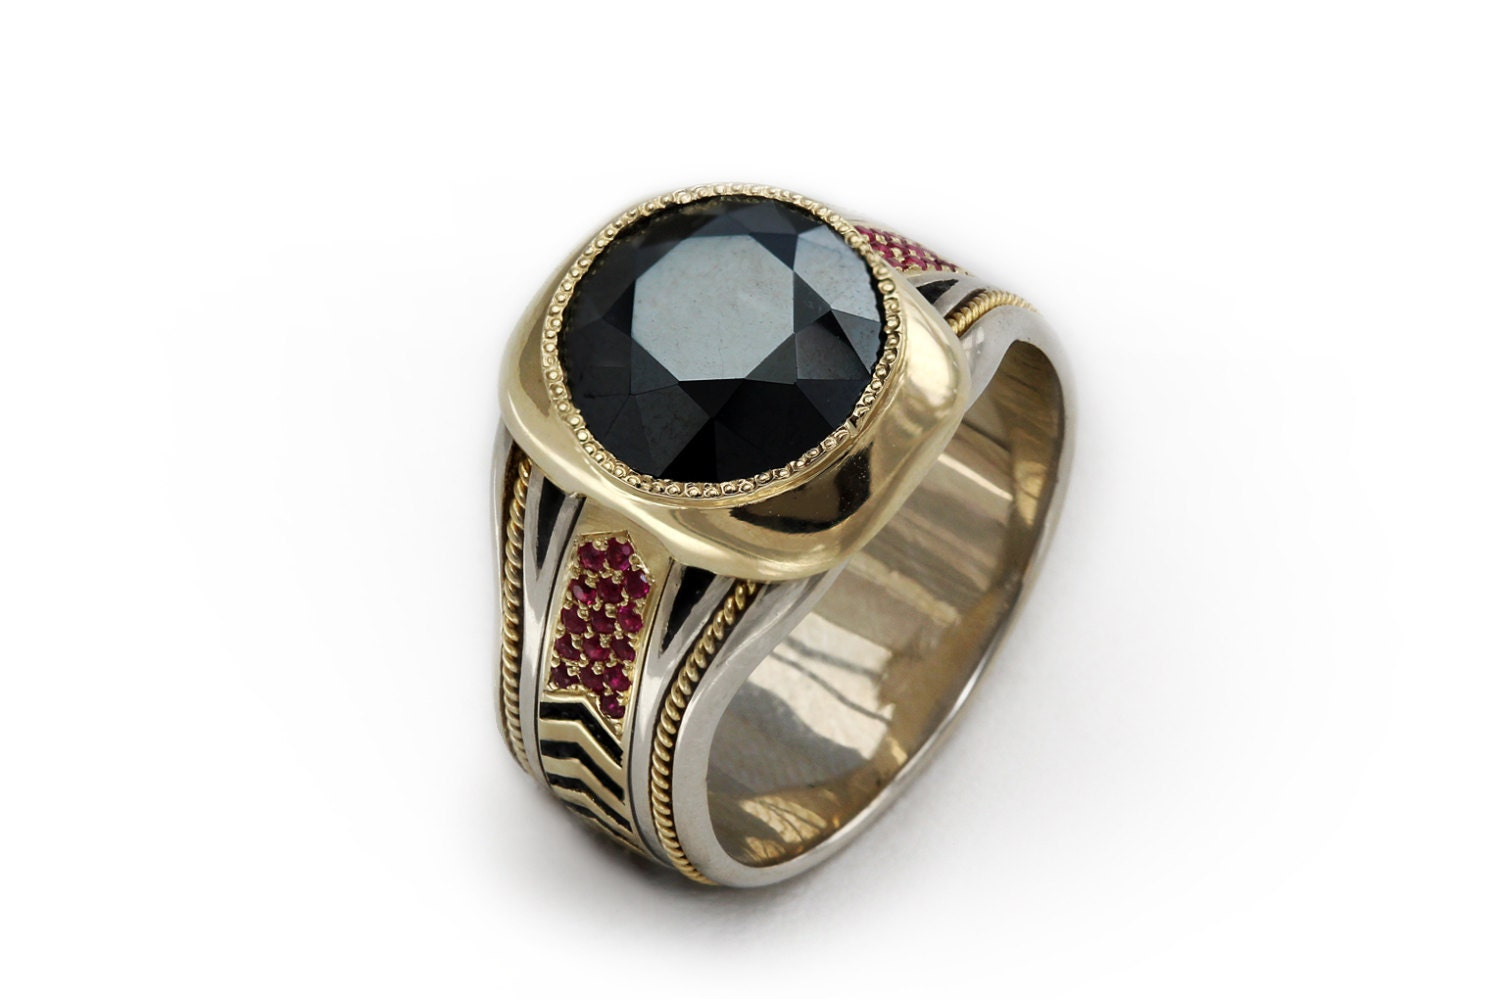 Black spinel 14k gold men\'s ring Gemstone cocktail ring